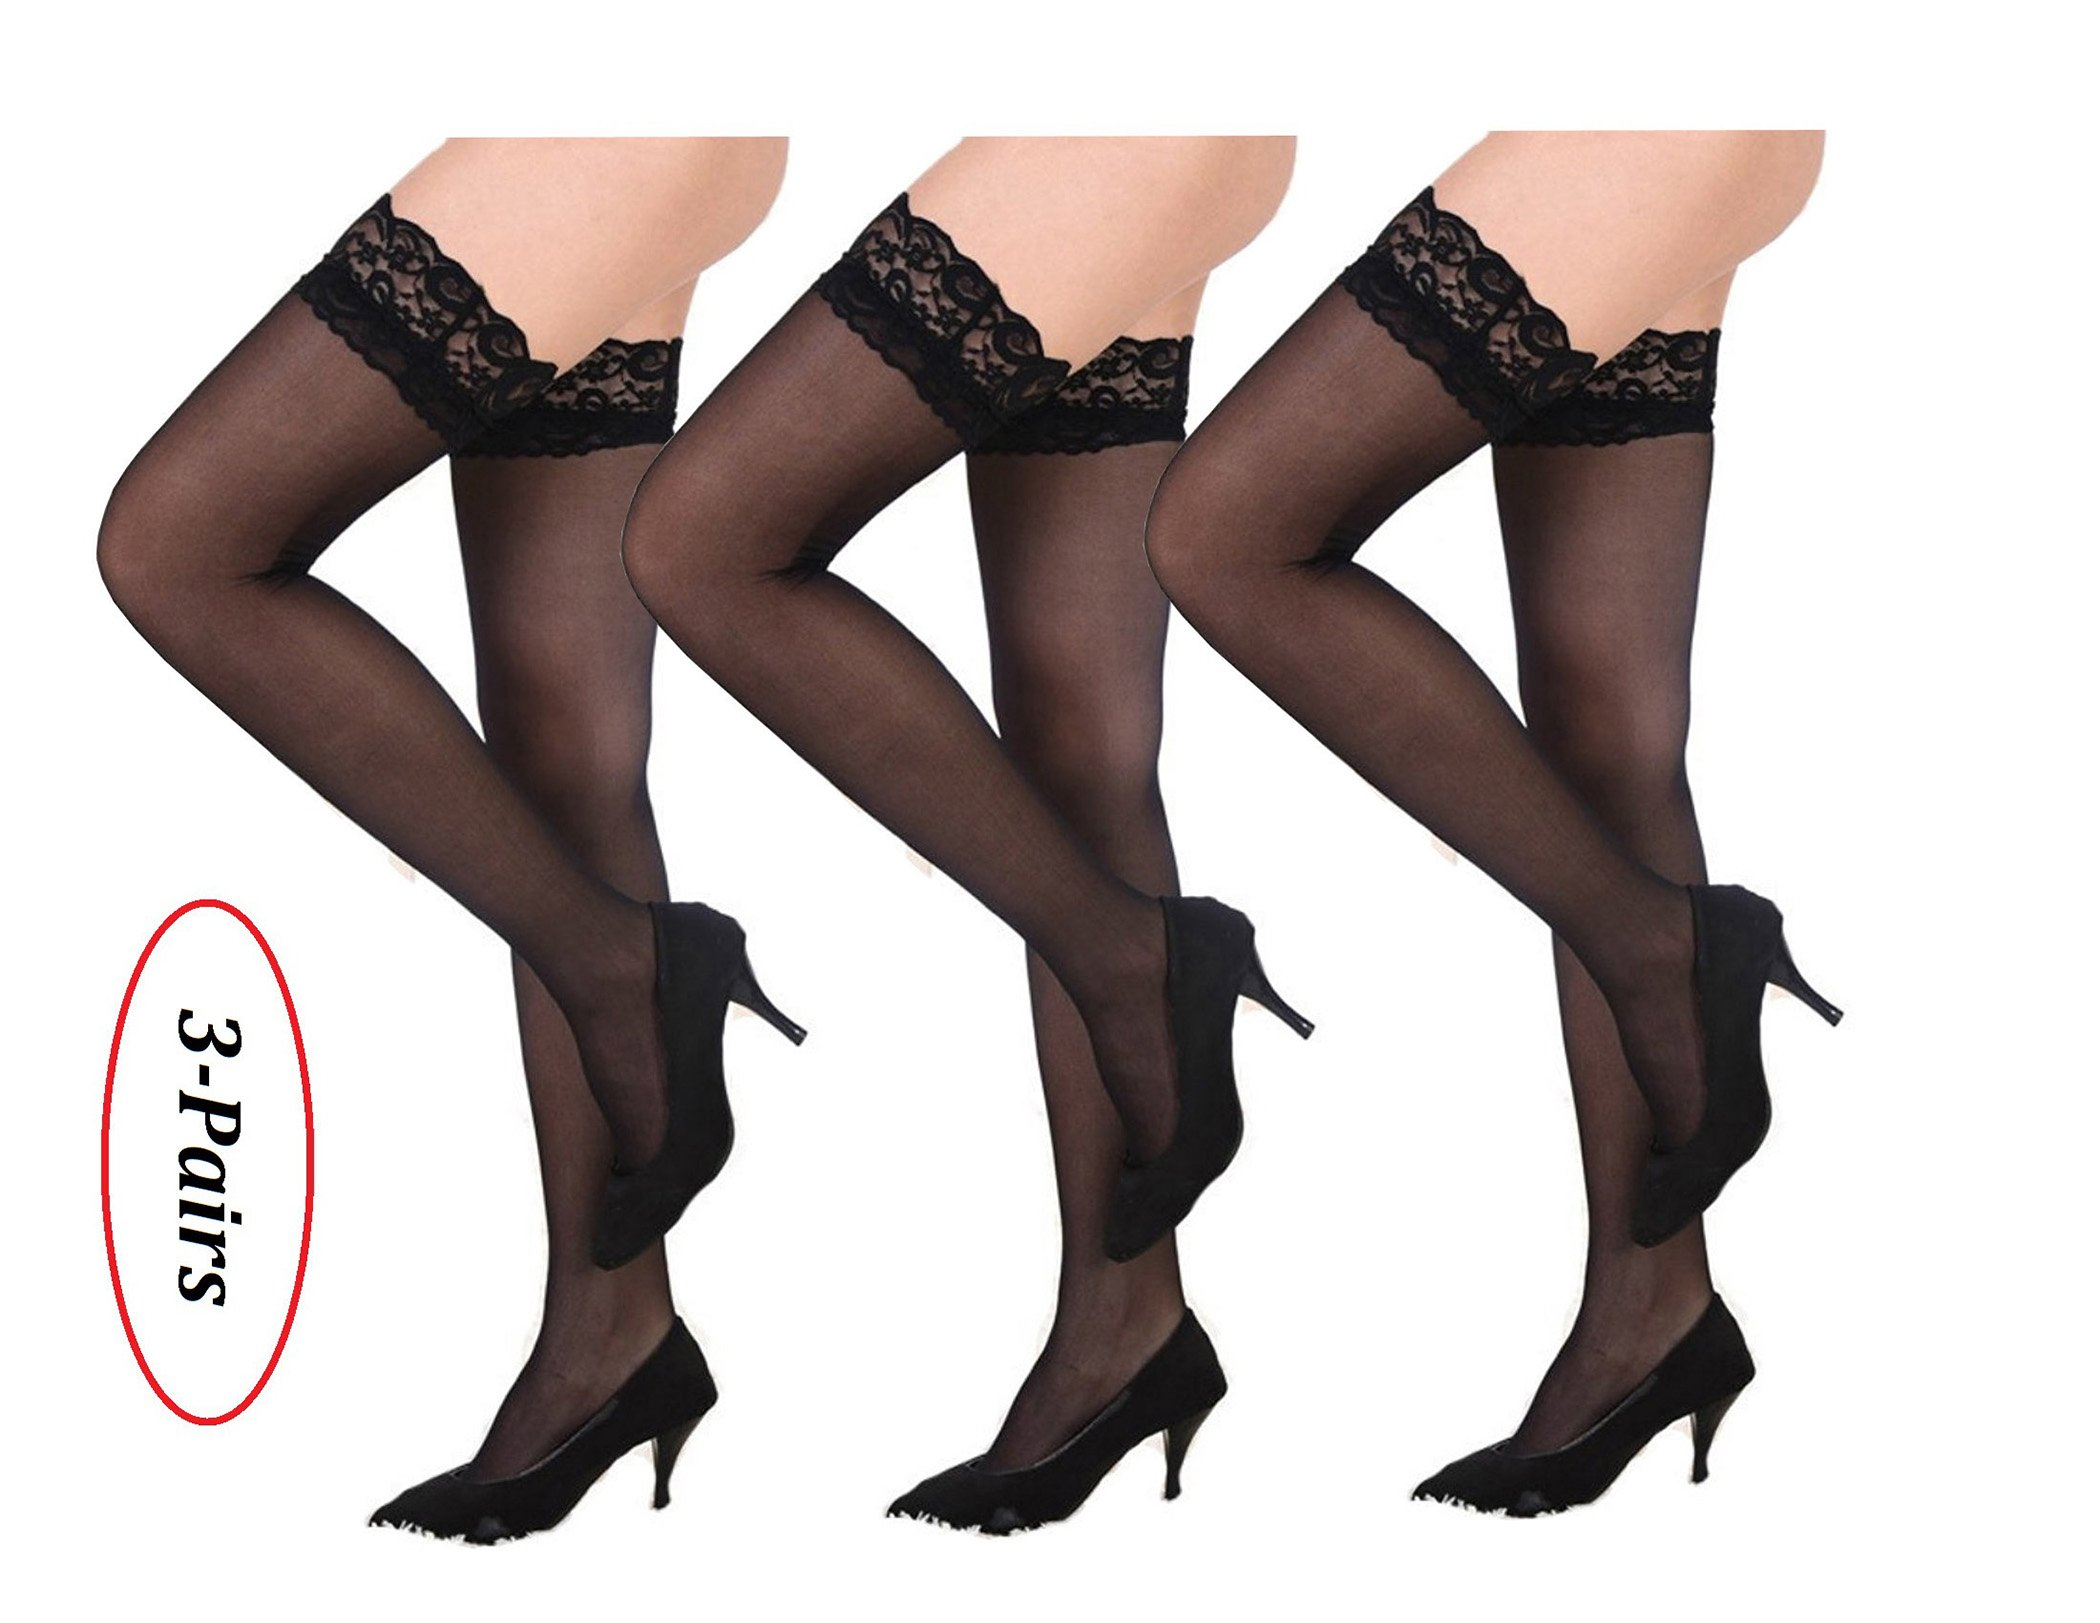 Thigh-High Stockings non-slip Silicone Sheer Lace Top Thigh High Over the Summer Style Sexy Knee Long Stockings (3-Pairs-Black) by RIER (Image #2)